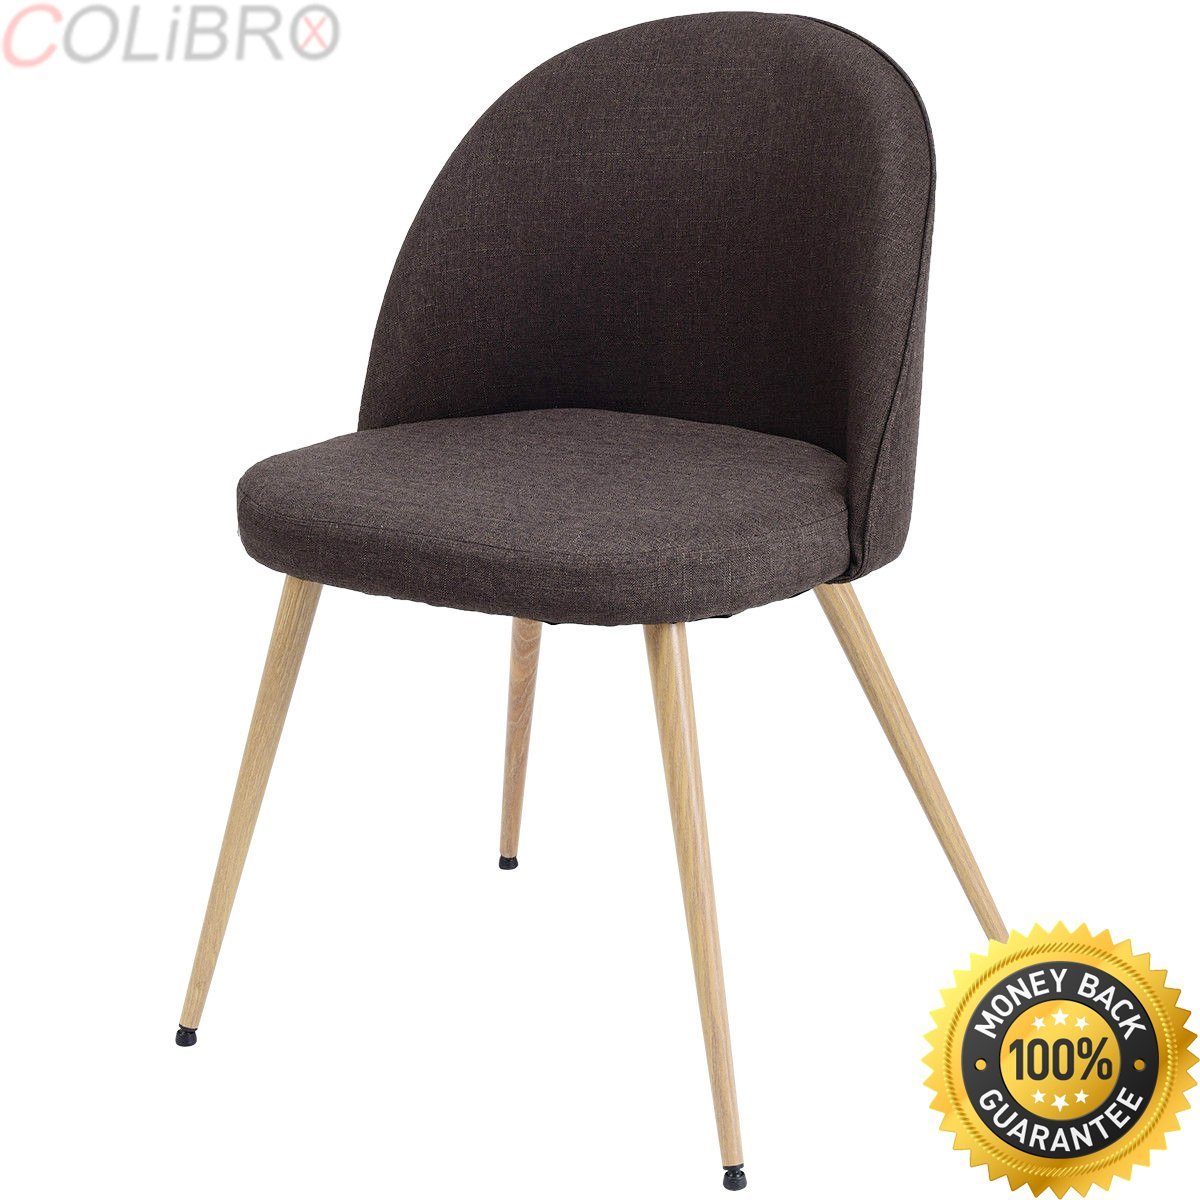 Astounding Buy Roses Deco Accent Chair These Living Room Chairs Add Unemploymentrelief Wooden Chair Designs For Living Room Unemploymentrelieforg